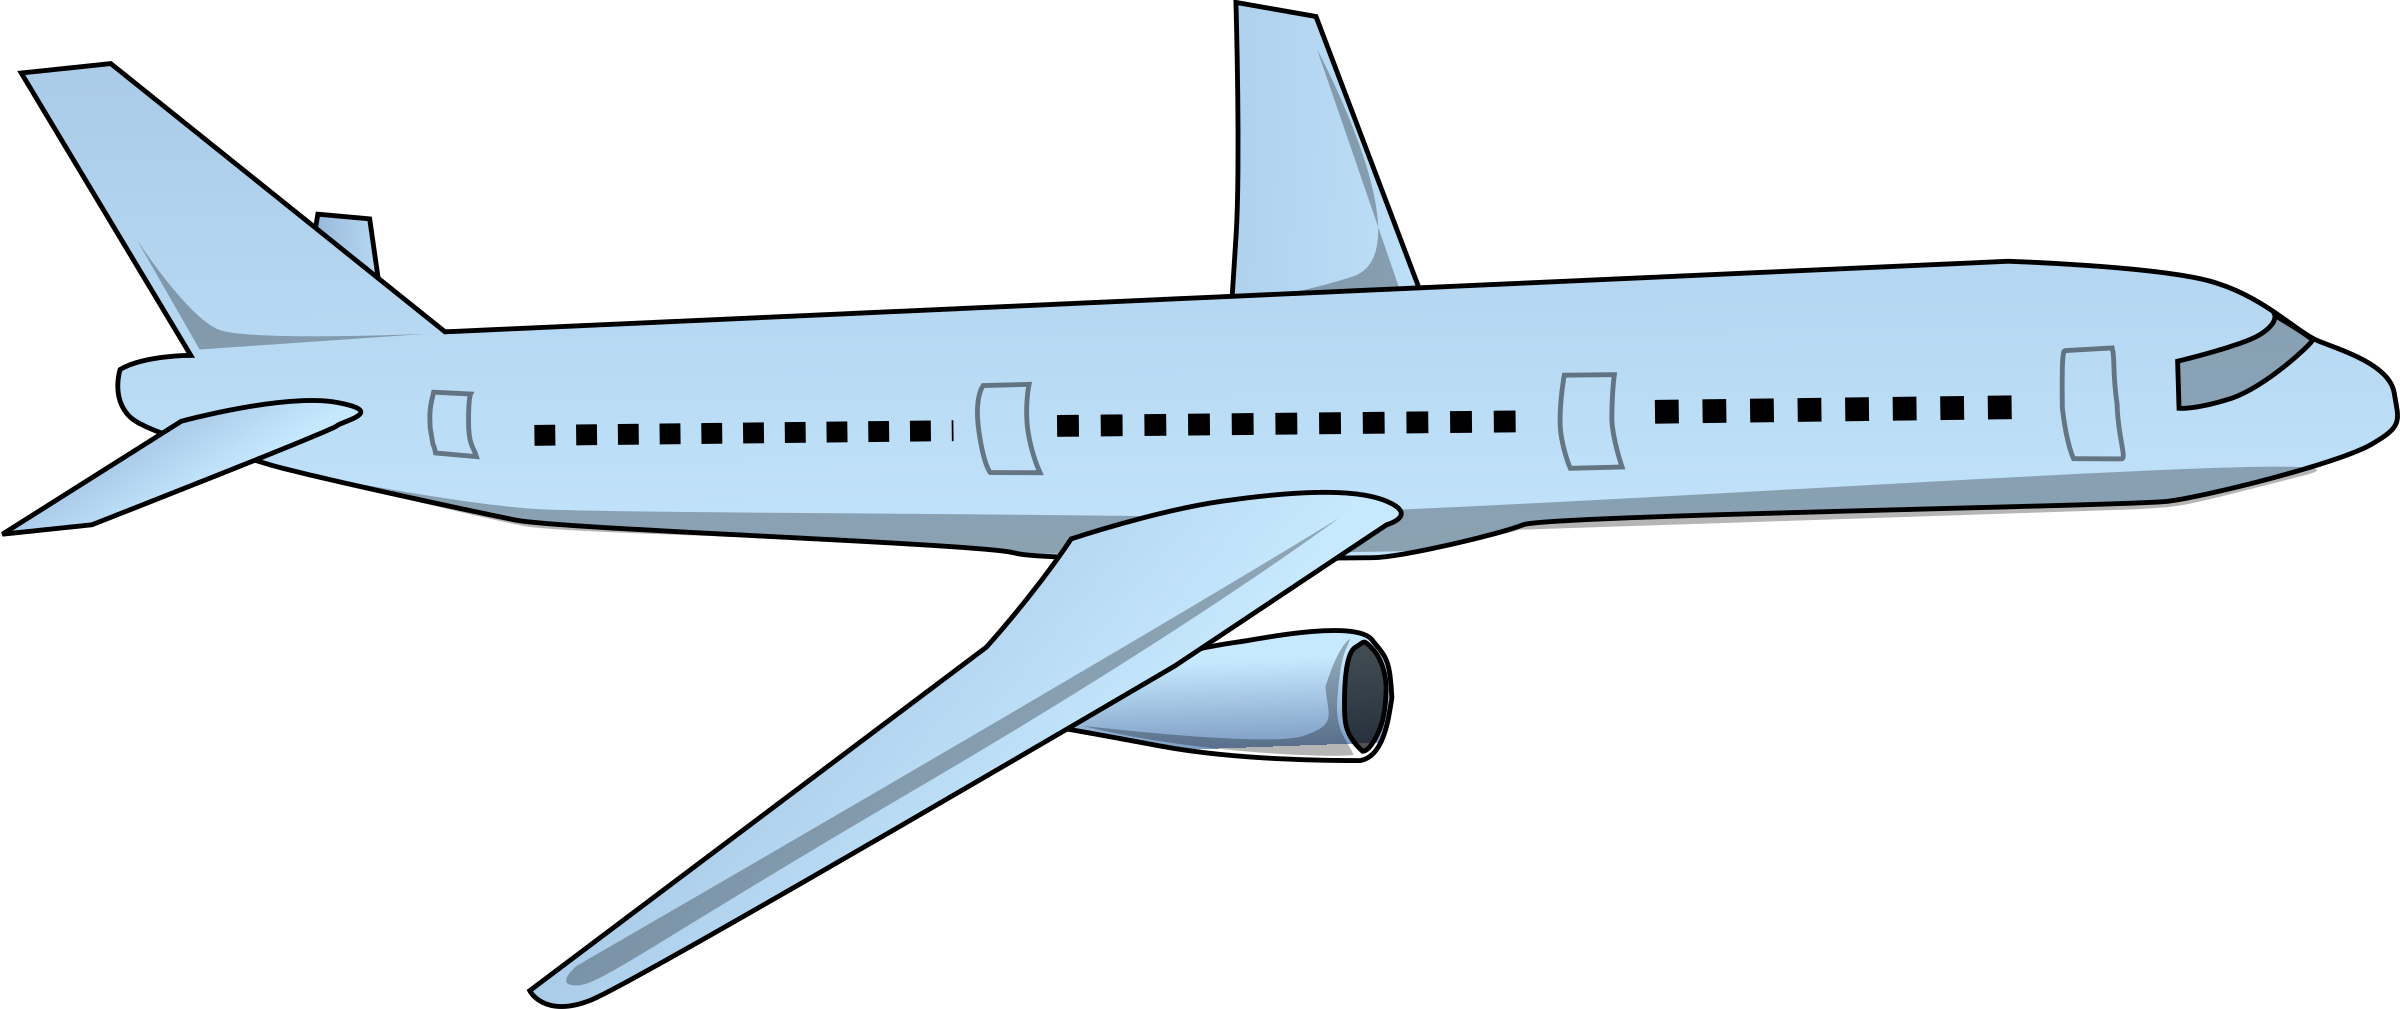 Plane cartoon png. Clipart aircraft big image